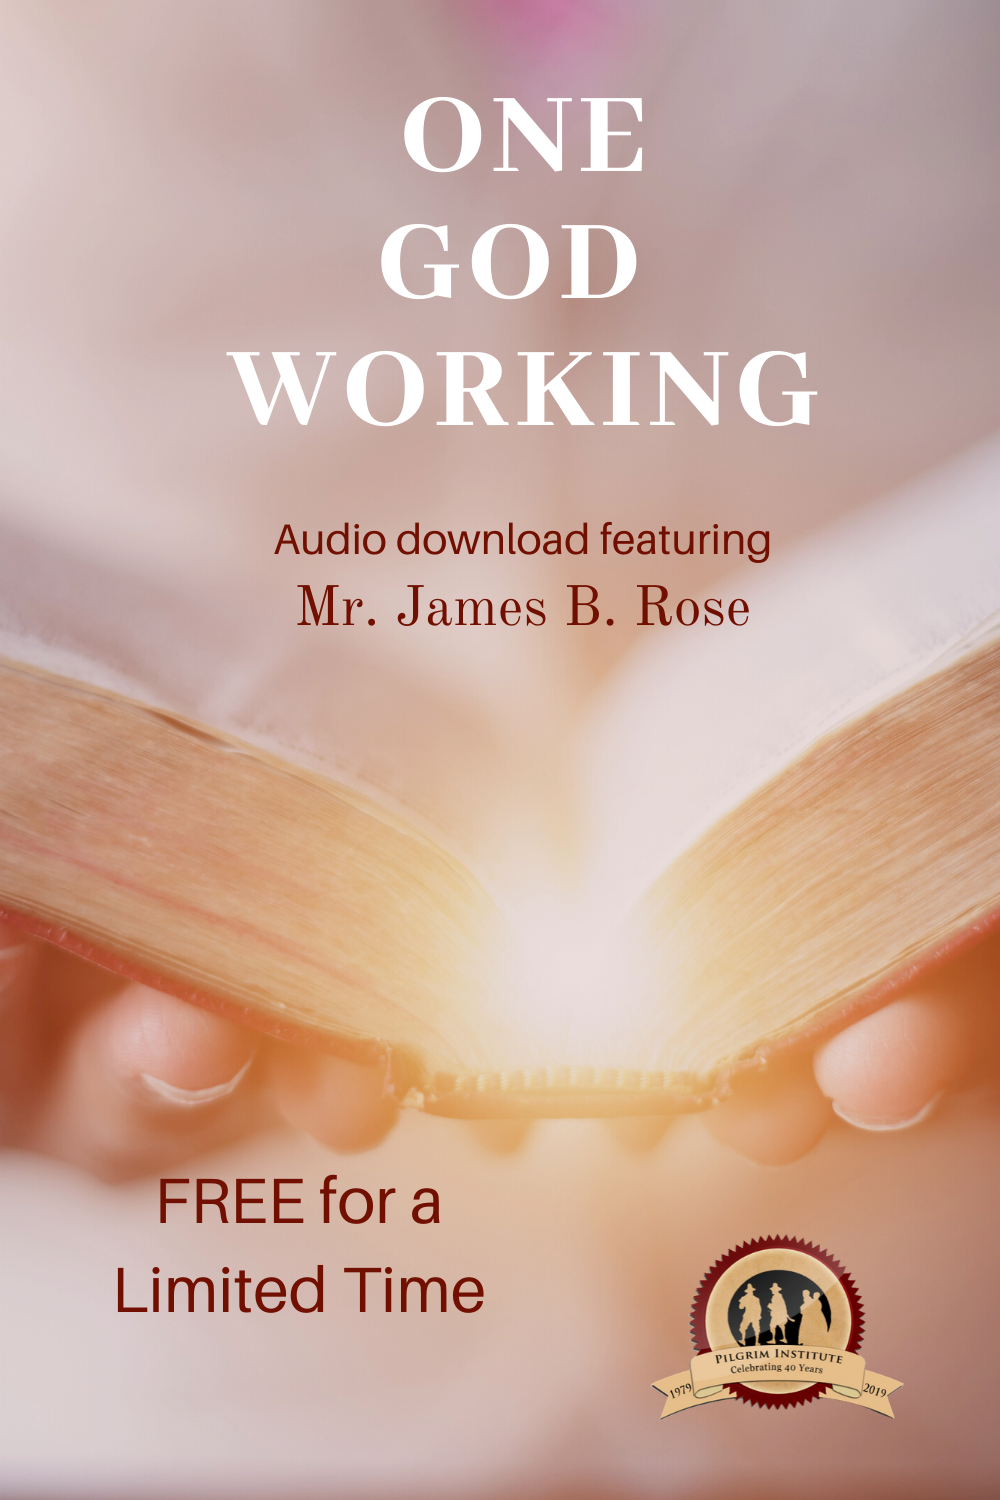 This presentation purposes to quicken the American Christian to discern the Providence of God and to recognize only One God Working in their heart, home school, church and nation. Mr. Rose will endeavor to illustrate why the principle of only One God Working is so full of peace, joy, hope and power for the believer.